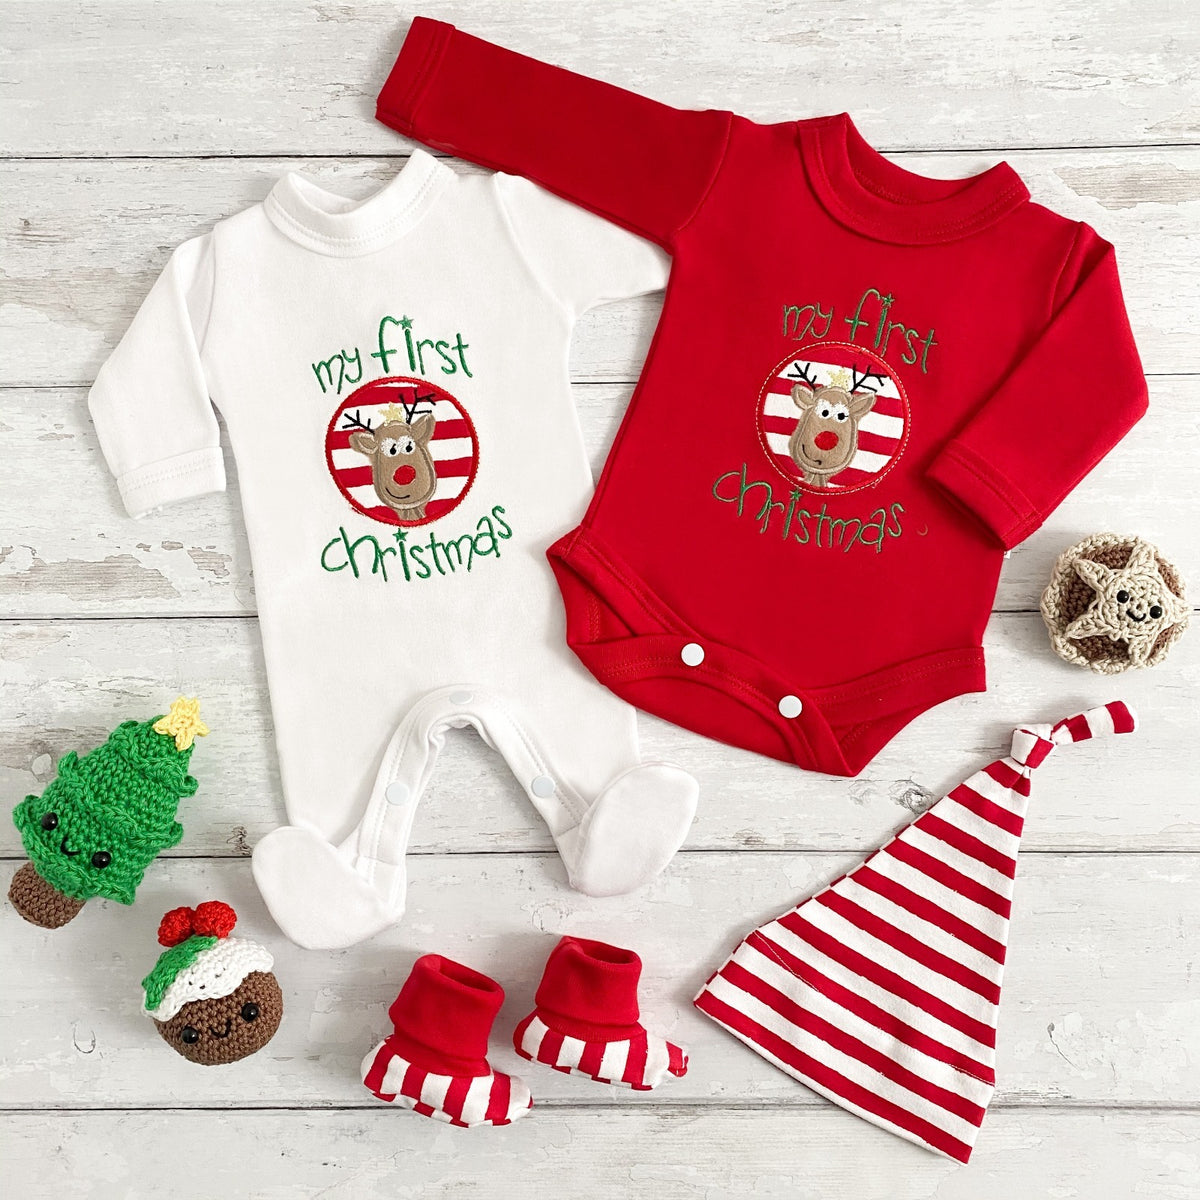 Santa hats and little elf hats in premature baby size; how cute are these!!